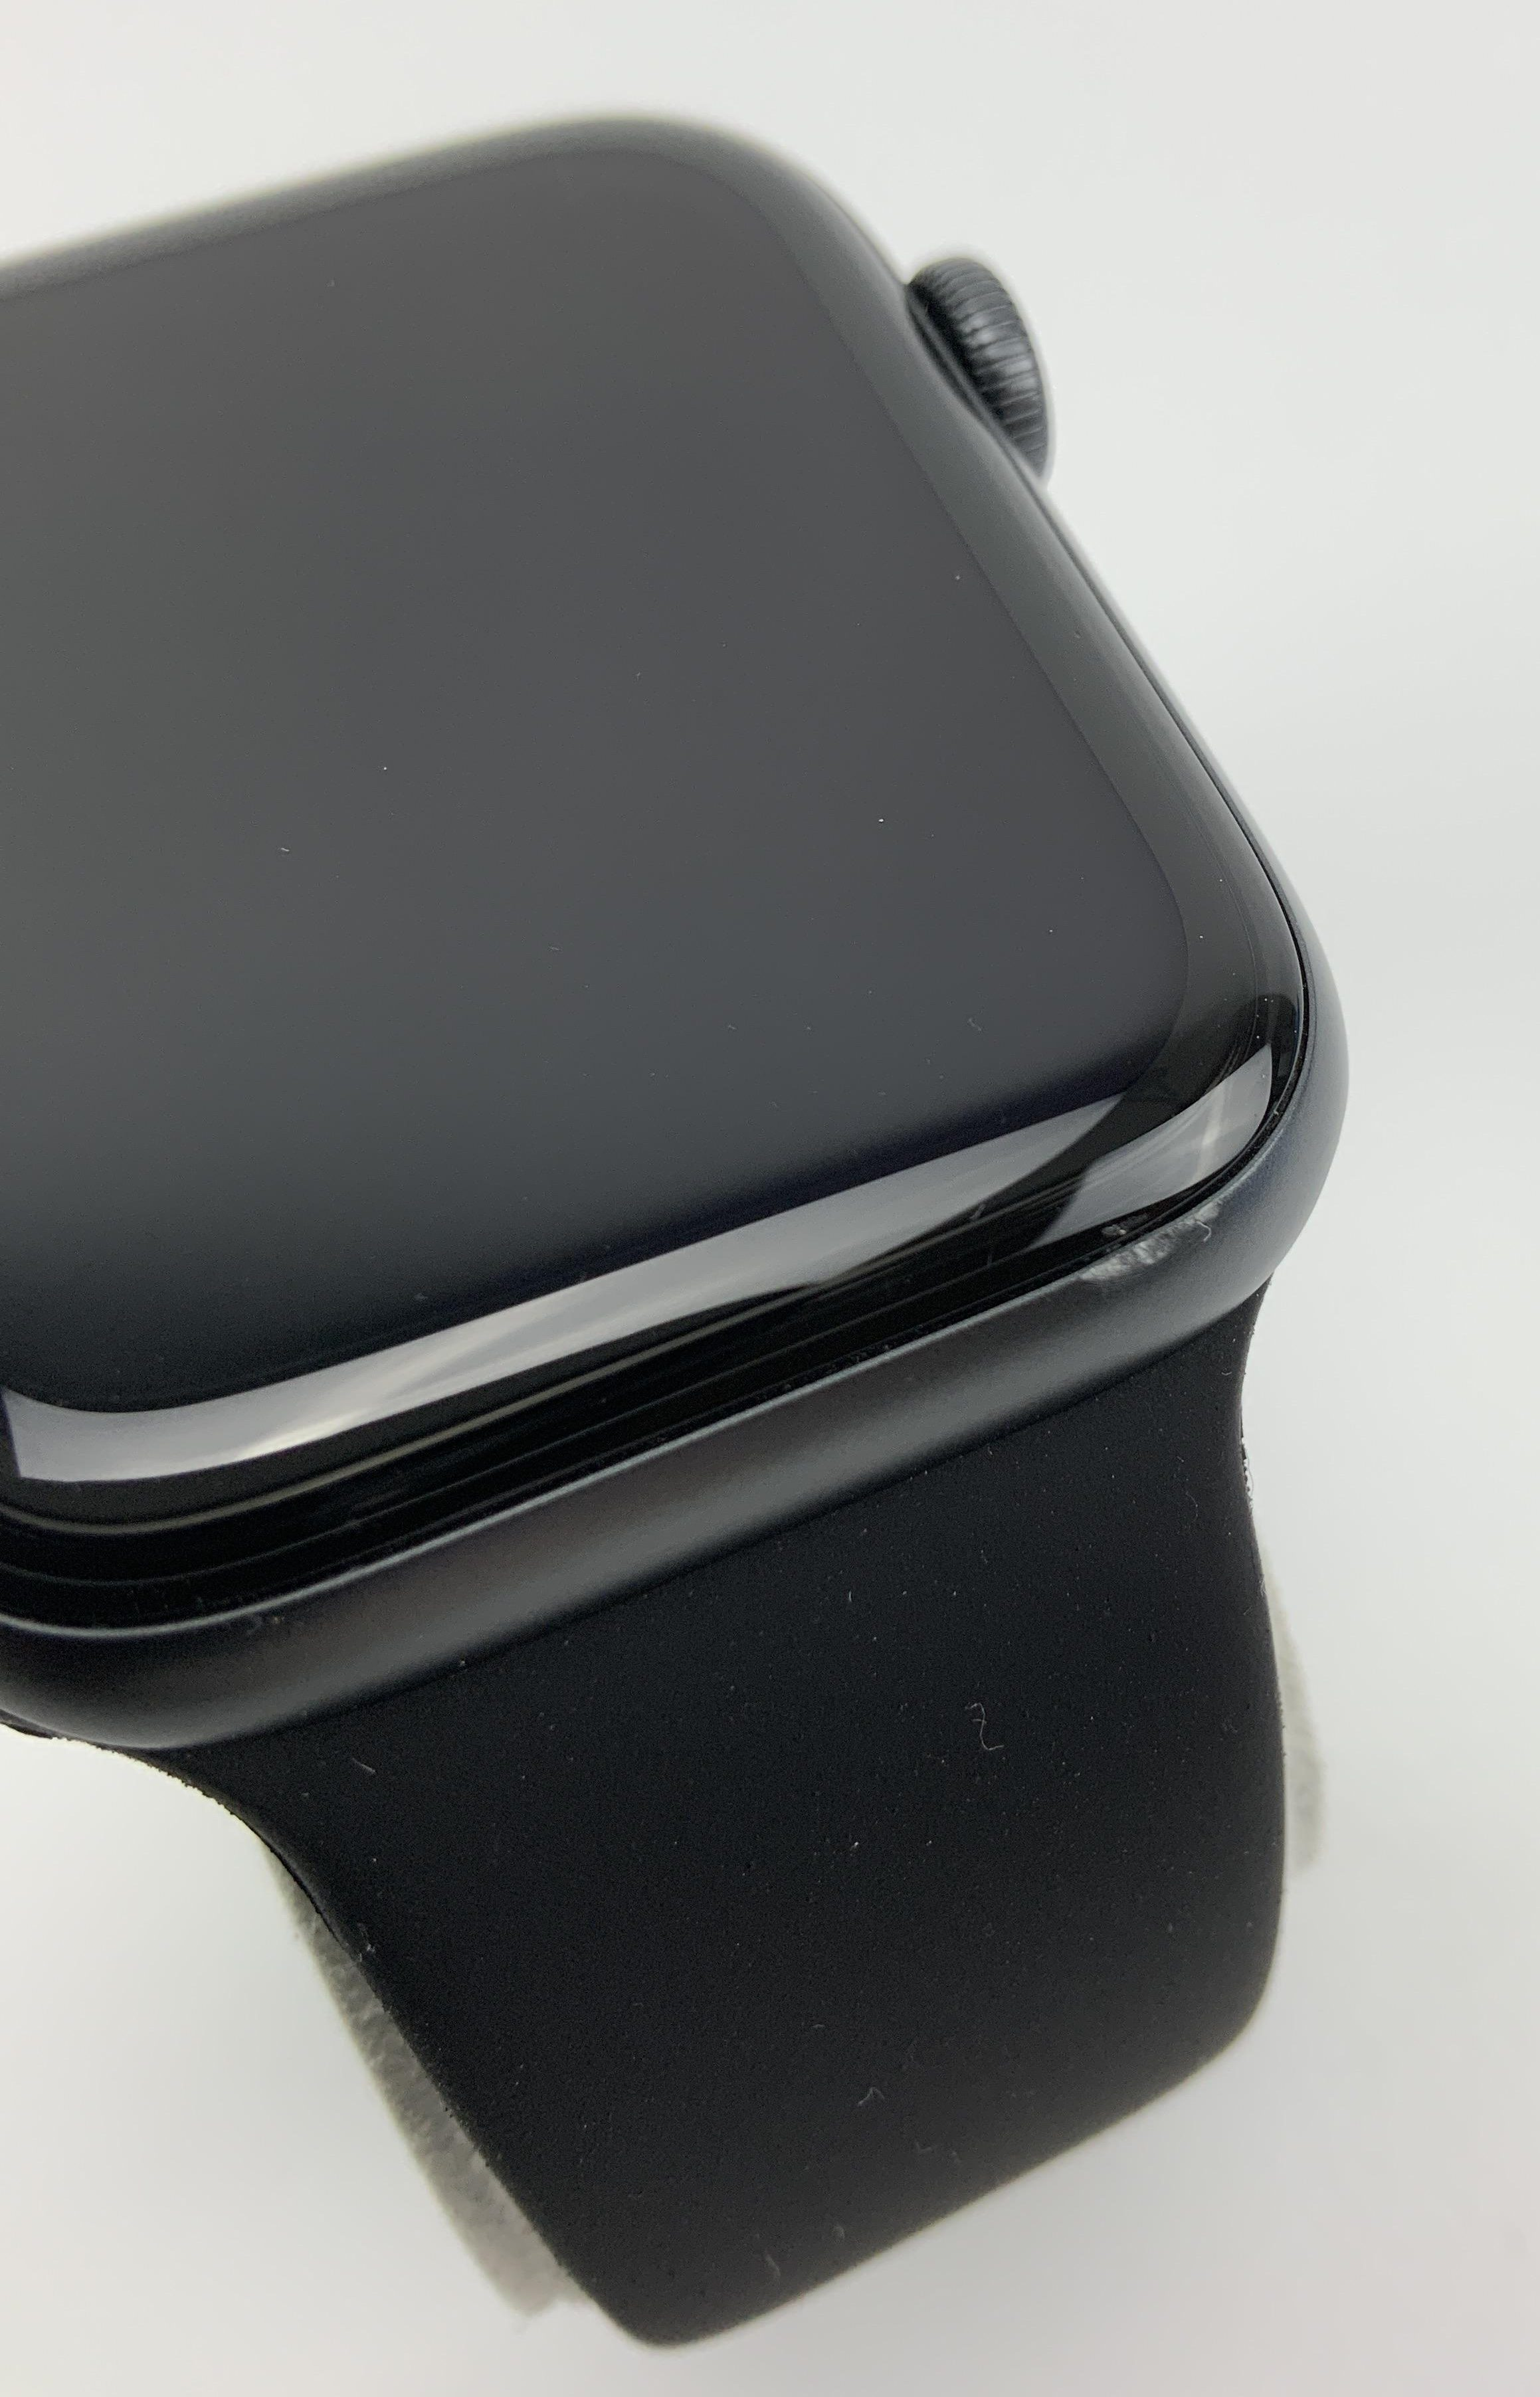 Watch Series 6 Aluminum (44mm), Space Gray, image 5